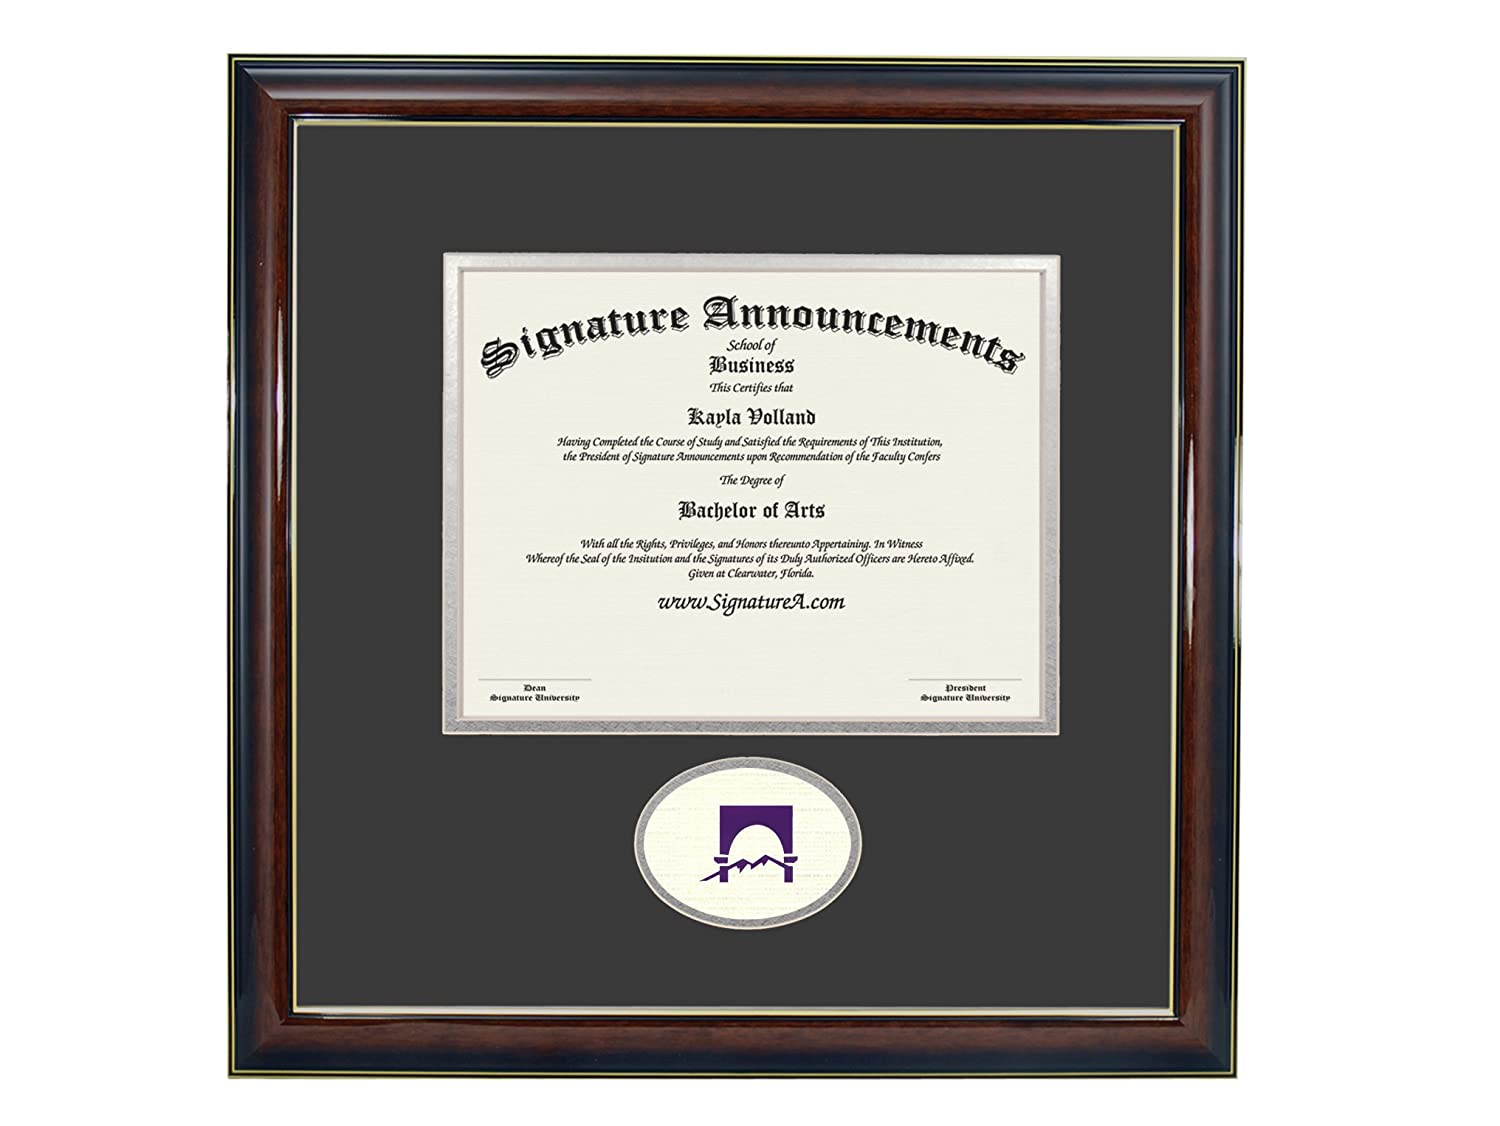 Professional//Doctor Sculpted Foil Seal Graduation Diploma Frame Gloss Mahogany with Gold Accent Signature Announcements New Mexico Highlands University-Farmington Undergraduate 16 x 16